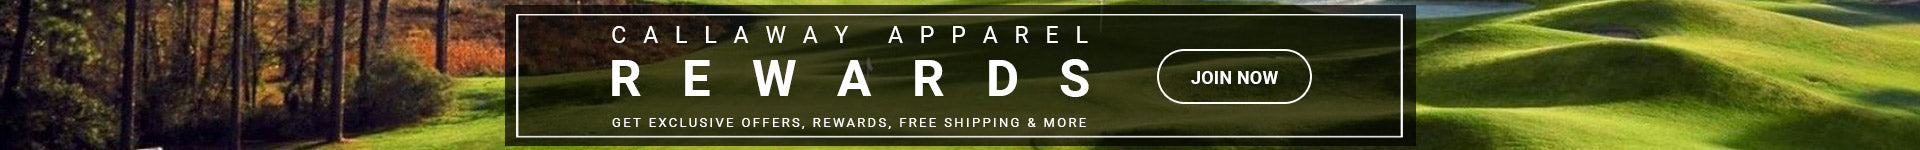 Callaway Apparel Rewards